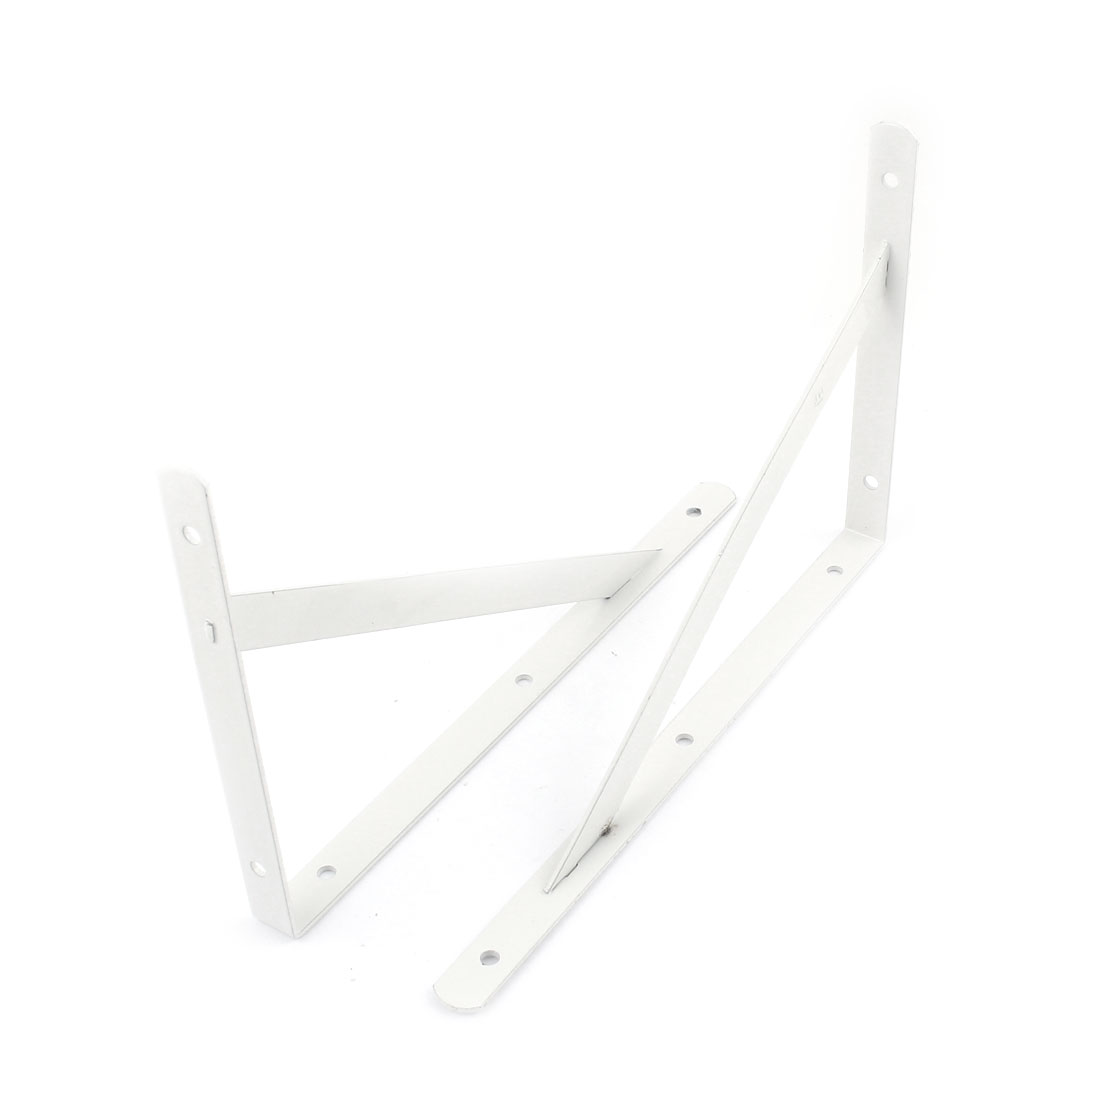 2 Pcs 90 Degree Wall Mount Support Shelf Bracket Frame 25cm x 16cm